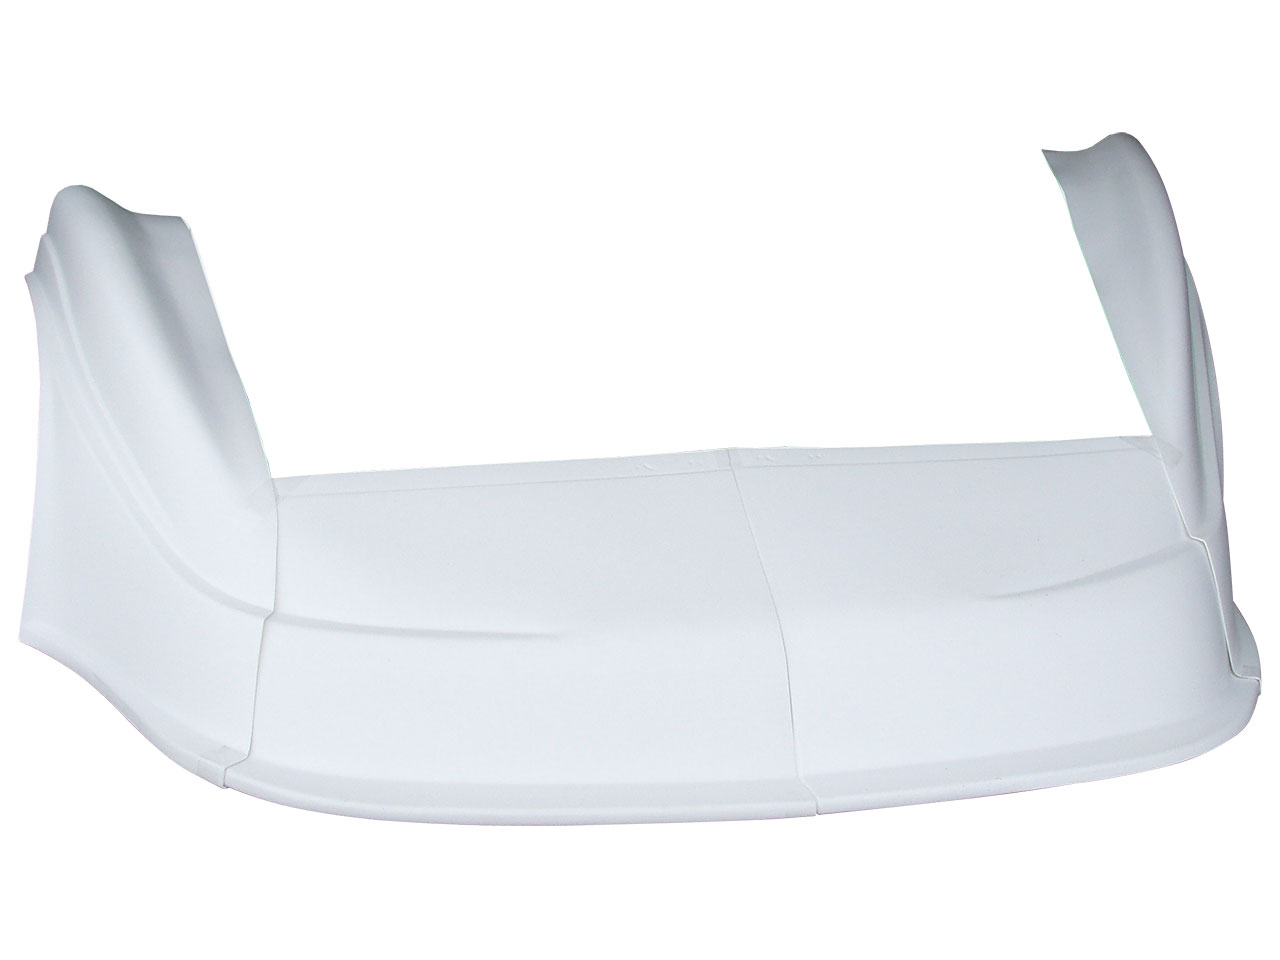 Picture of MD3 Gen 2 Nose Kit - (No Decals)